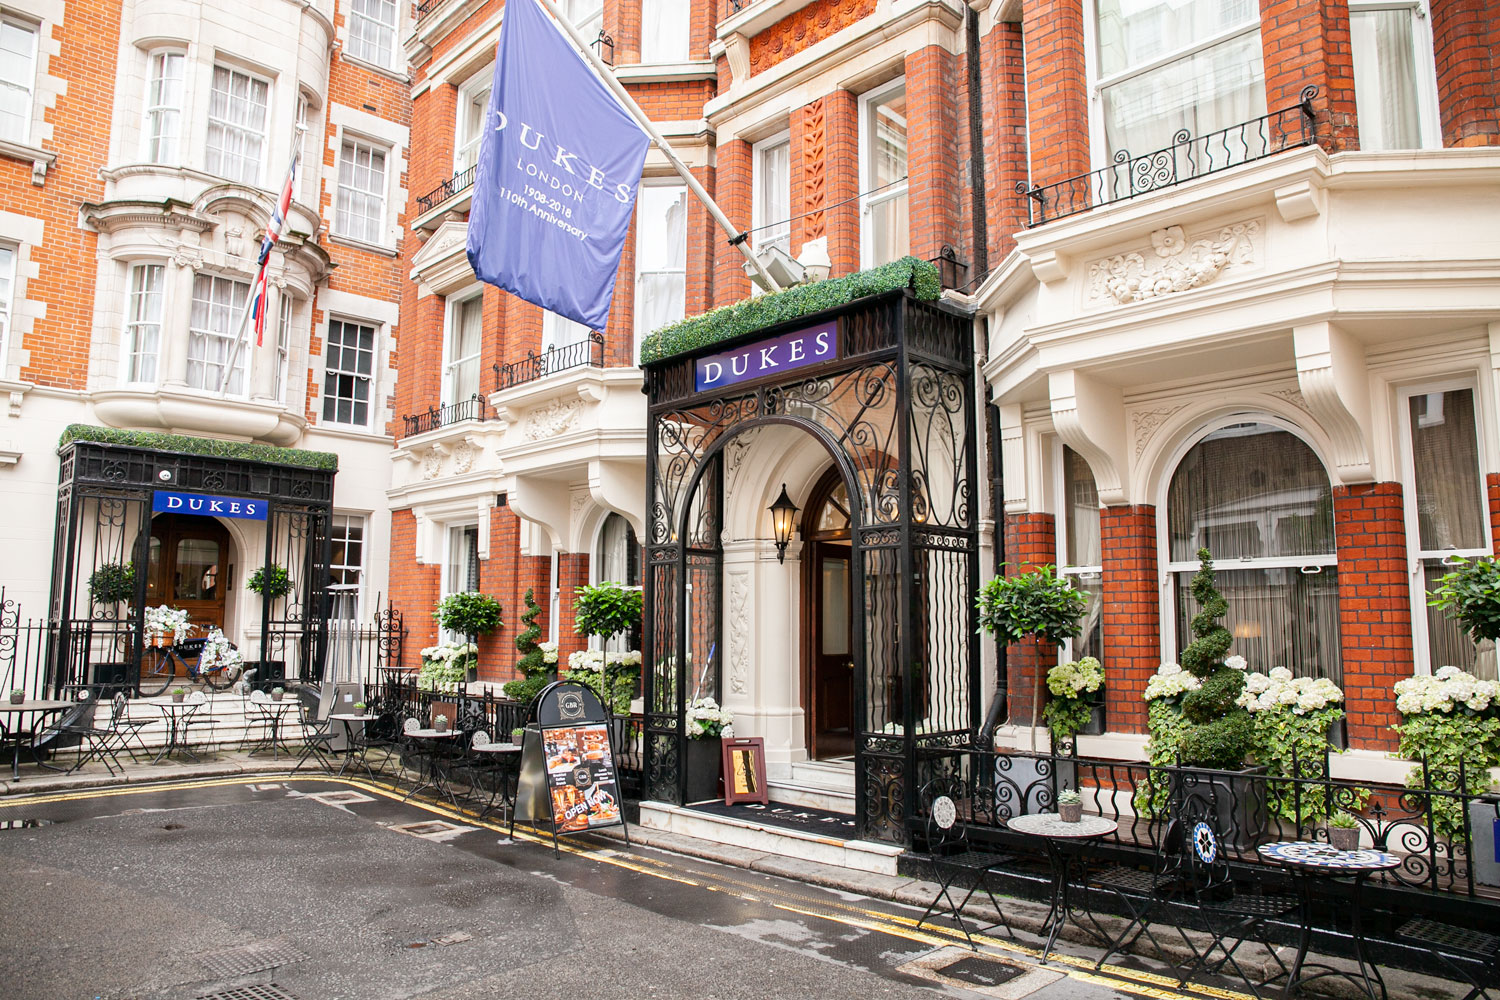 Hidden away in a back-alley of St. James you will find Dukes Hotel, where Princess Diana was a regular, and Ian Fleming once was served an exceptional drink, shaken not stirred, more commonly known as the preferred drink of a very special agent.